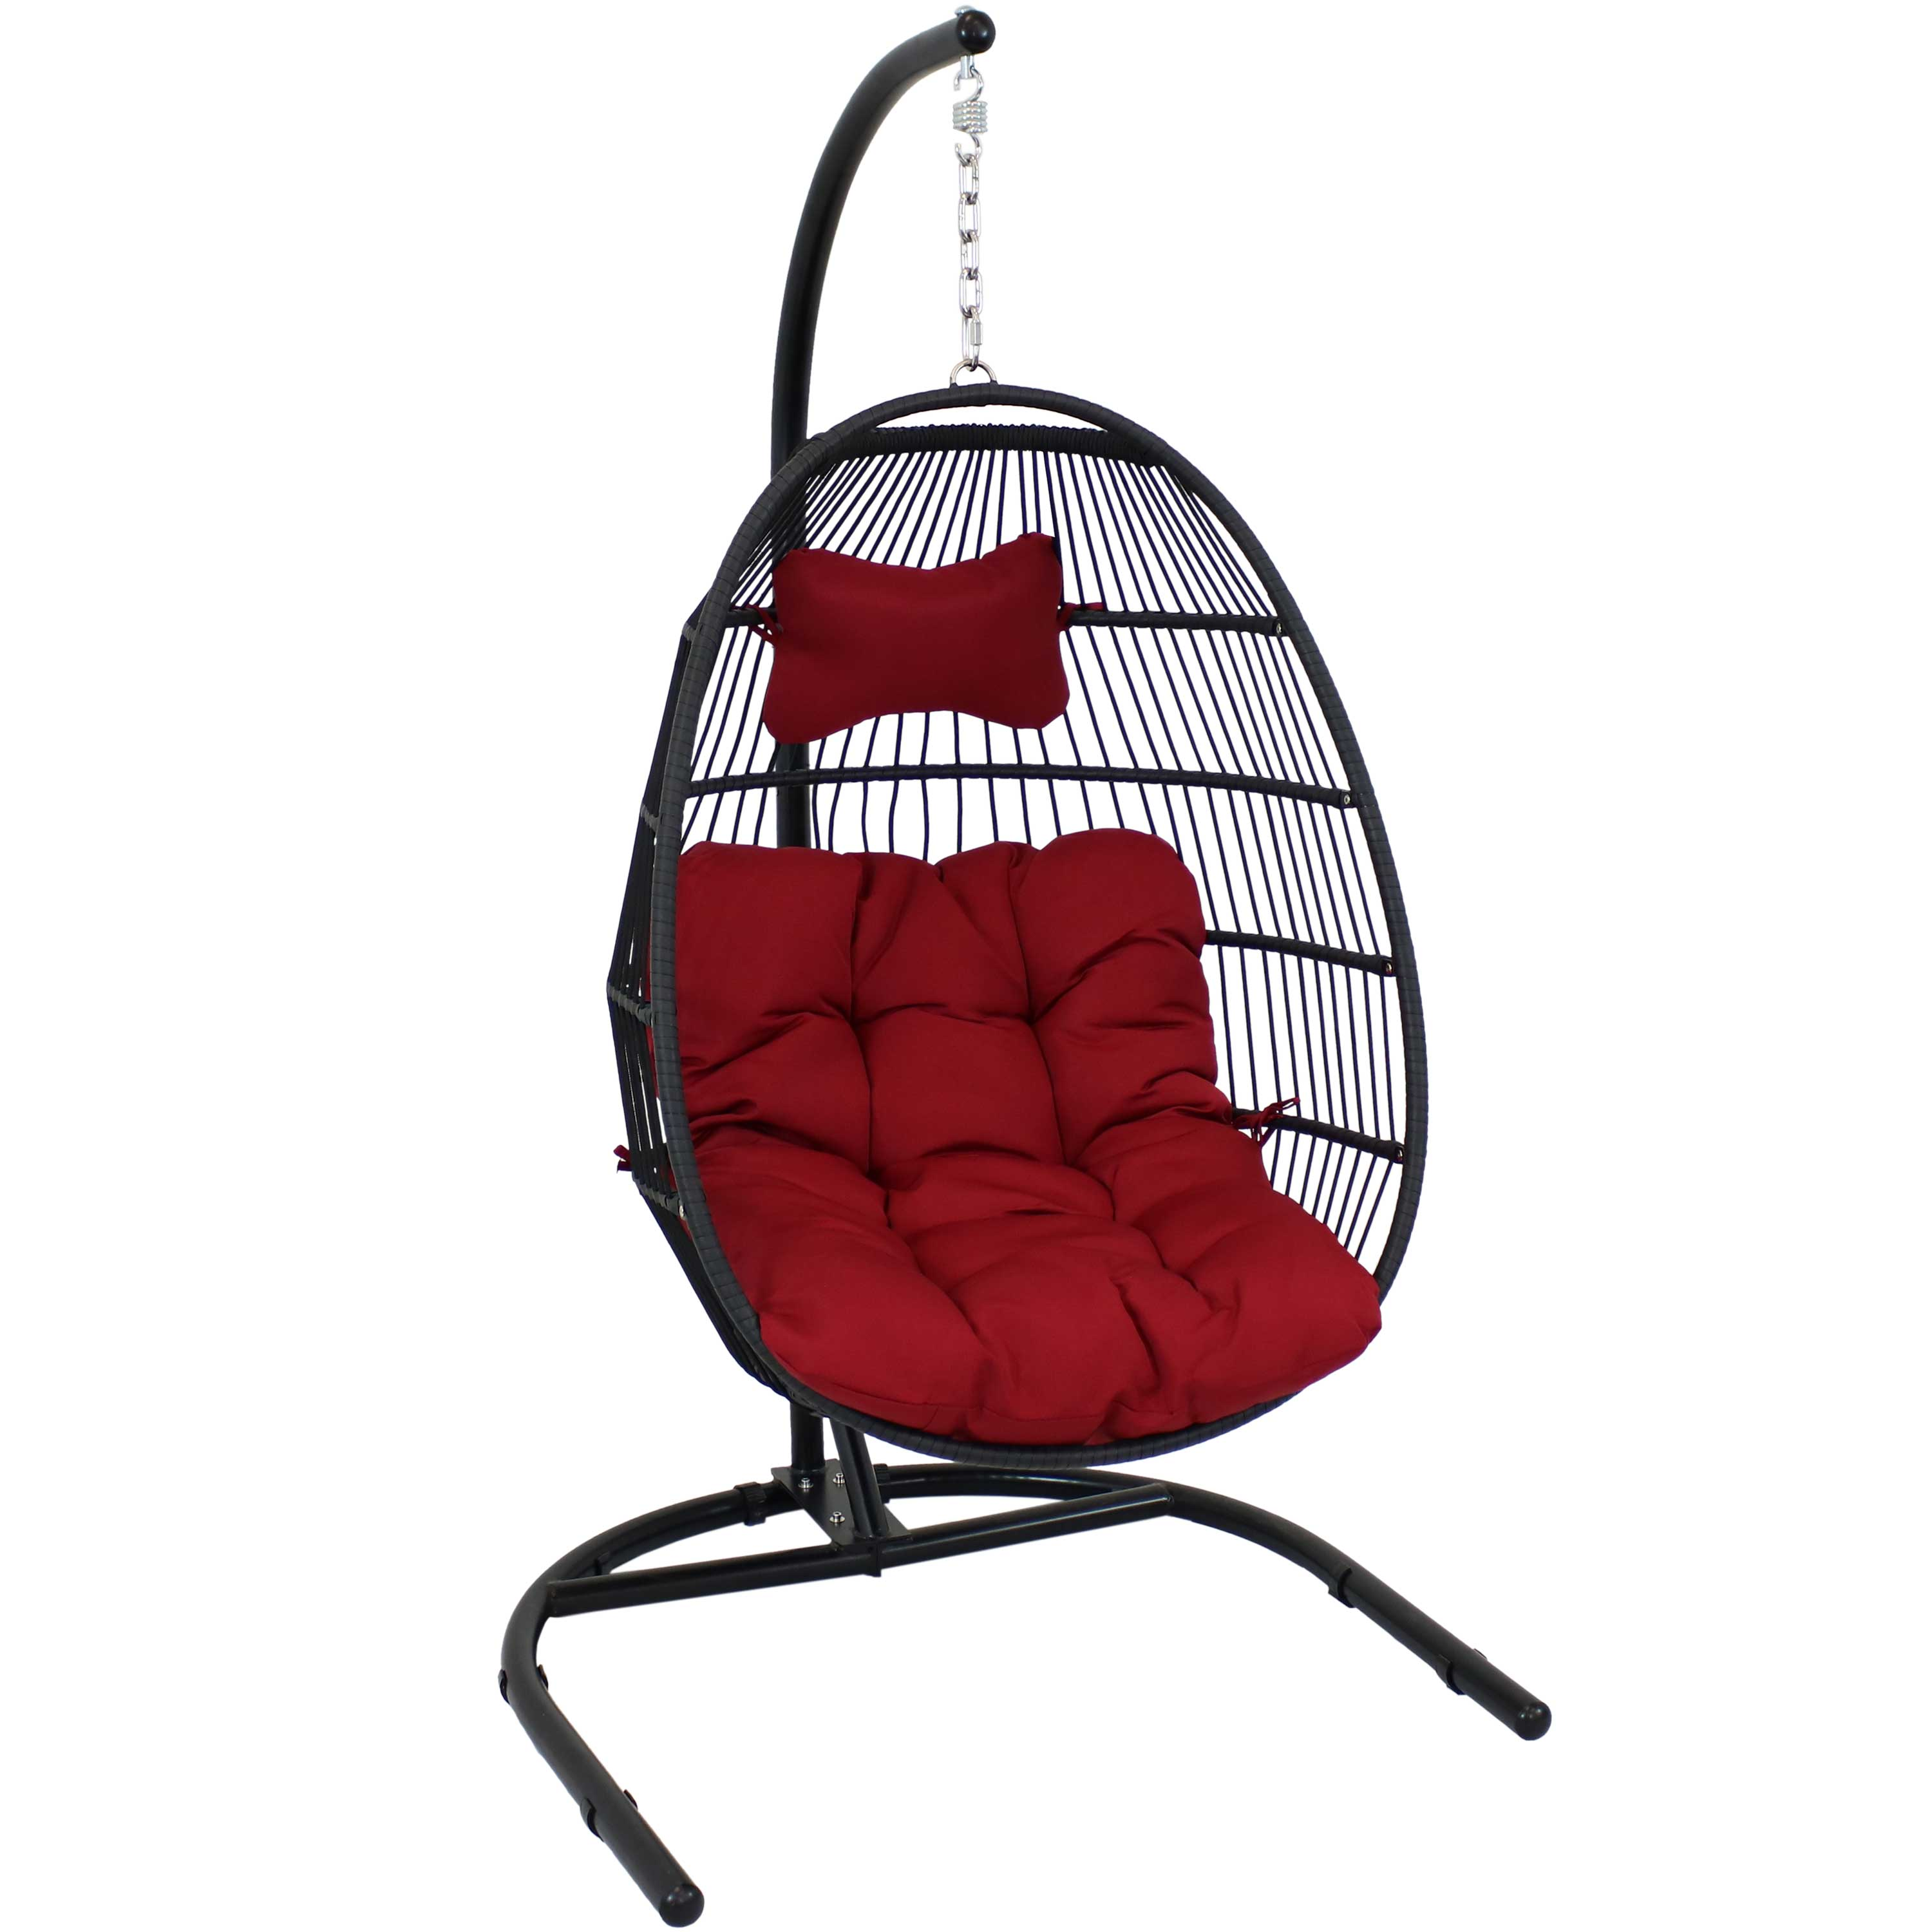 Sunnydaze Julia Hanging Egg Chair With Stand And Red Cushions Comfy Outdoor Collapsible Outdoor Hanging Chair With Stand Black Polyethylene Wicker Rattan Frame With Steel Stand 76 Inches Tall